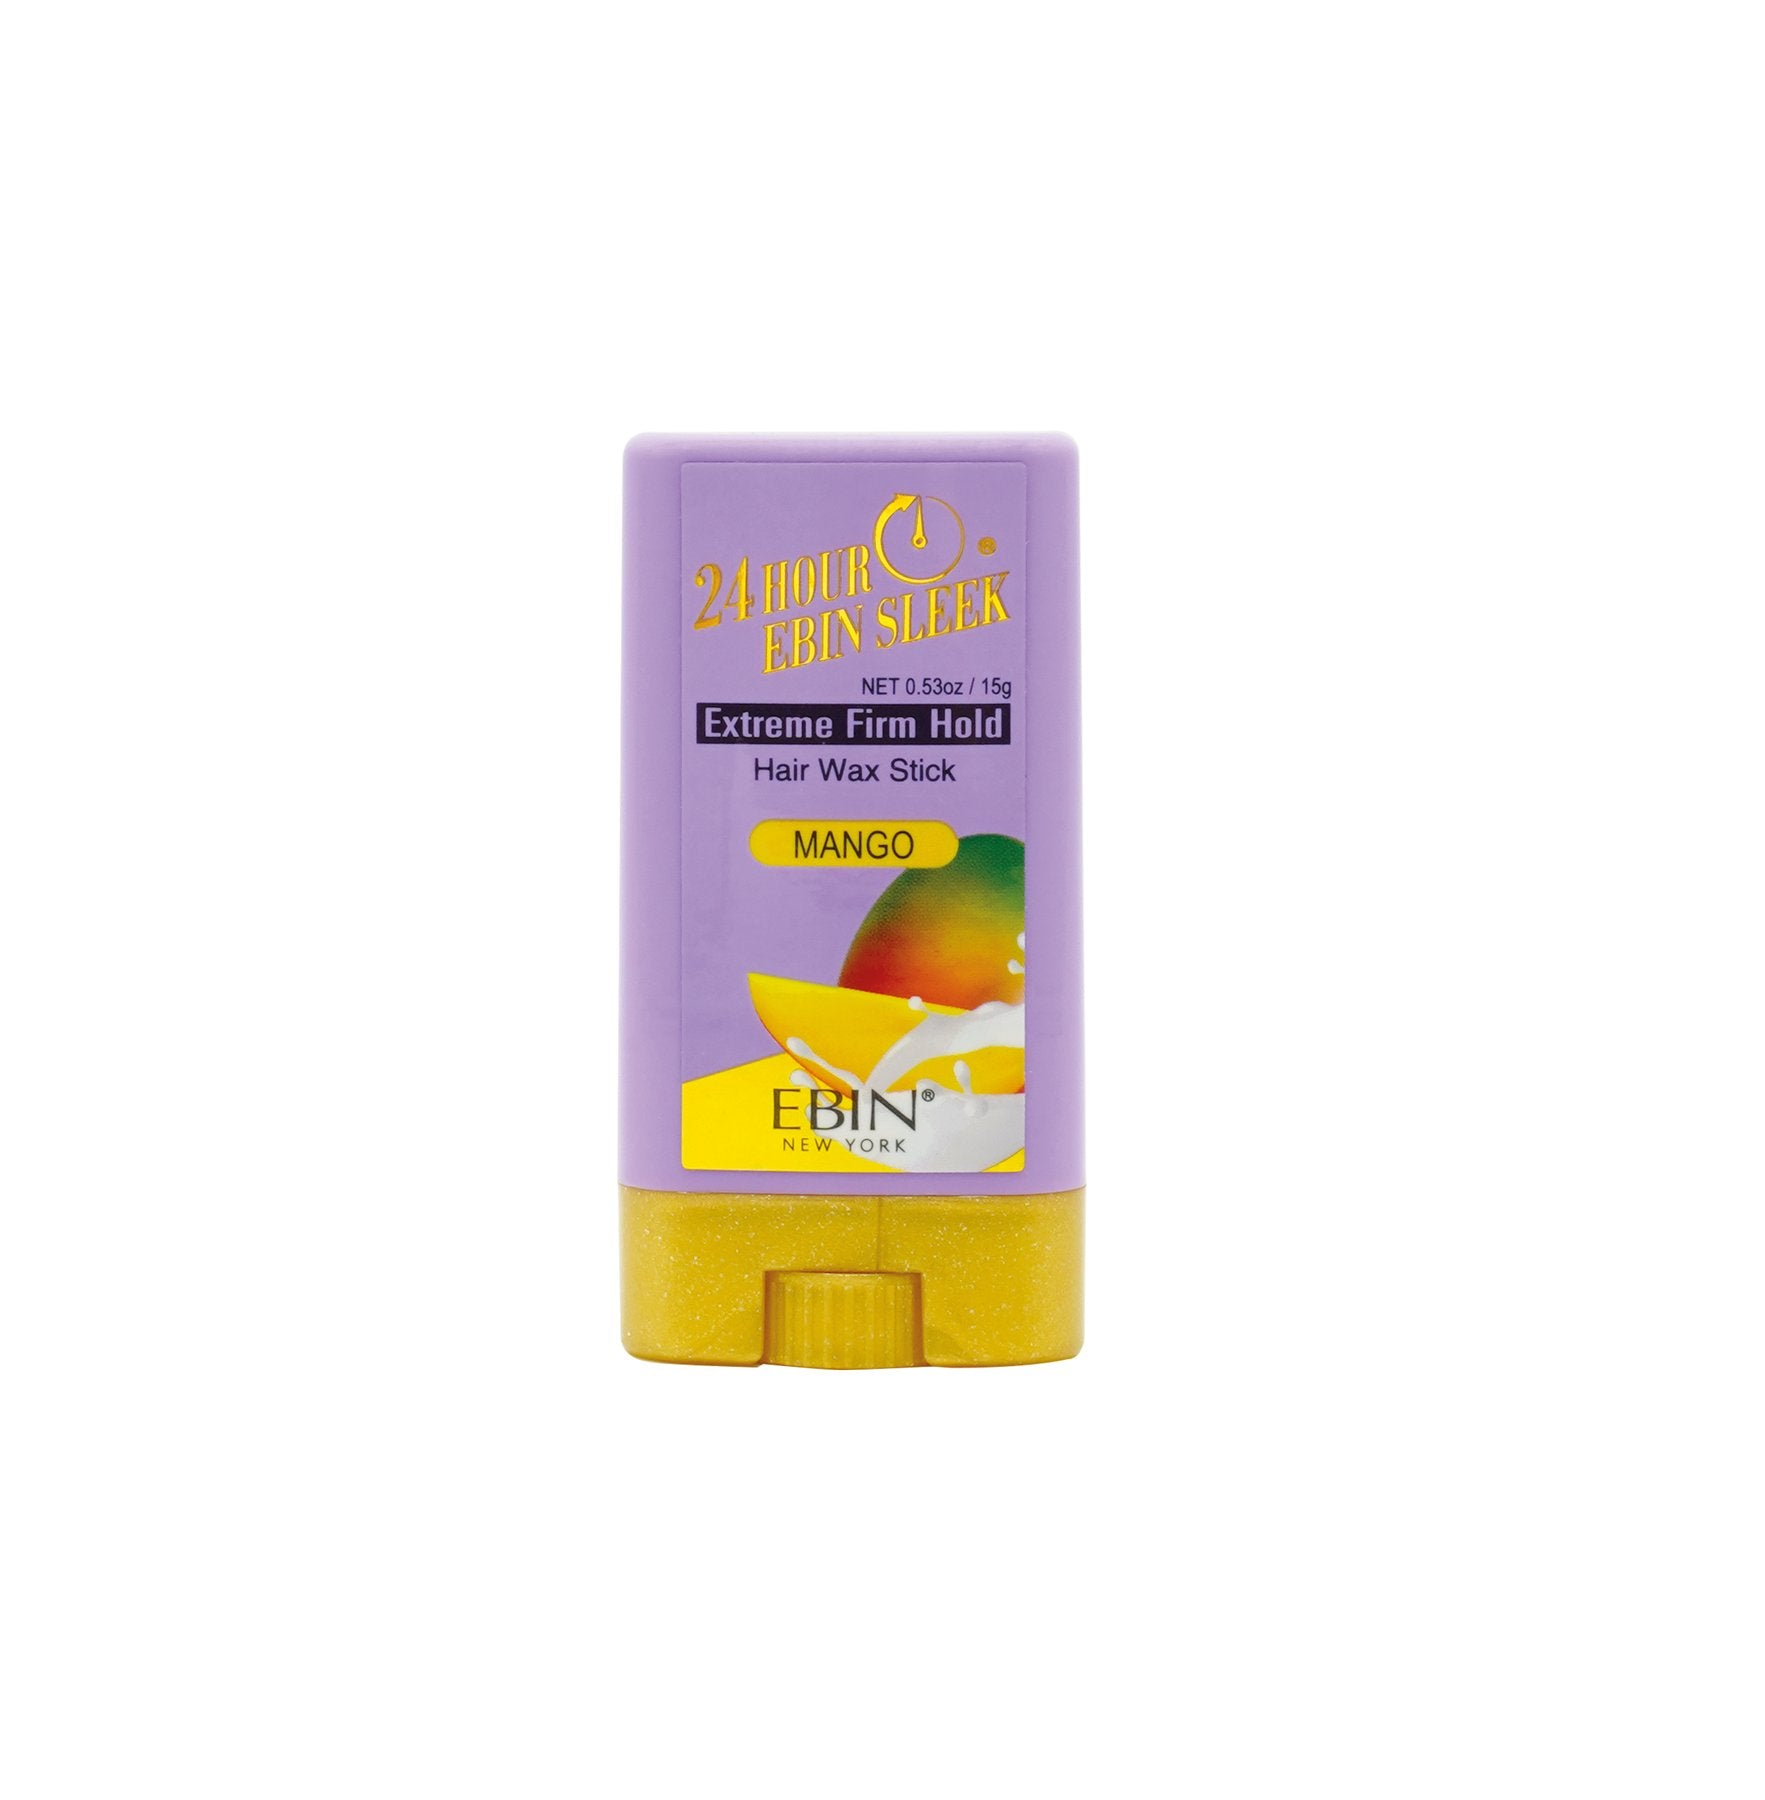 Ebin New York 24Hour Sleek & Go Extreme Firm Hold Wax Stick-Mango